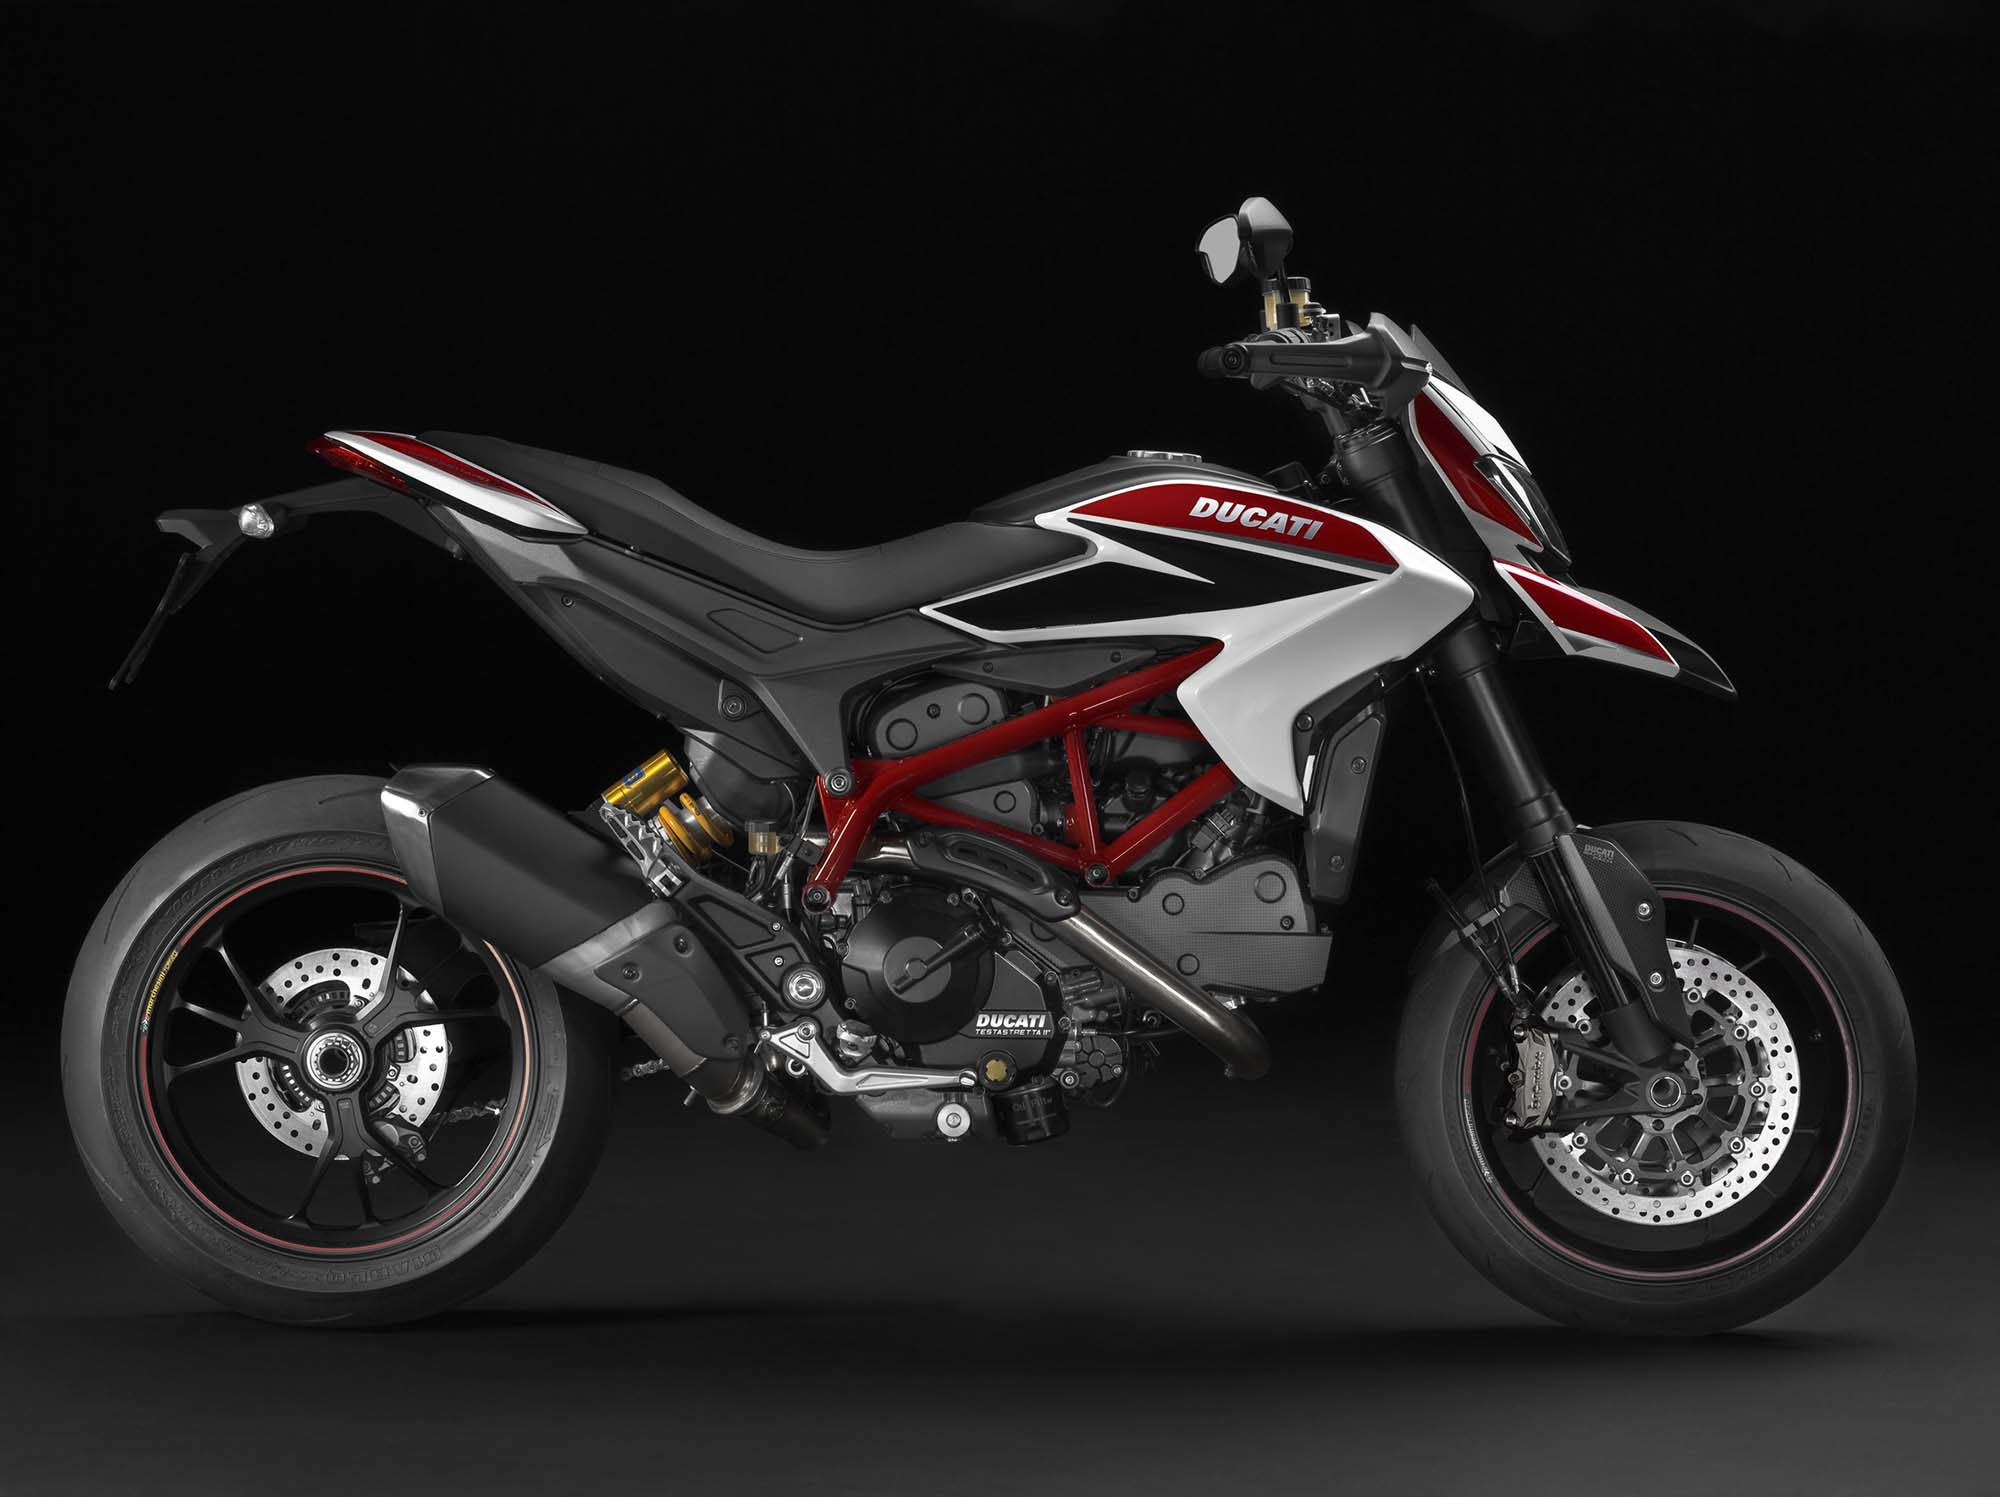 Ducati Hypermotard SP 2013 images #80073